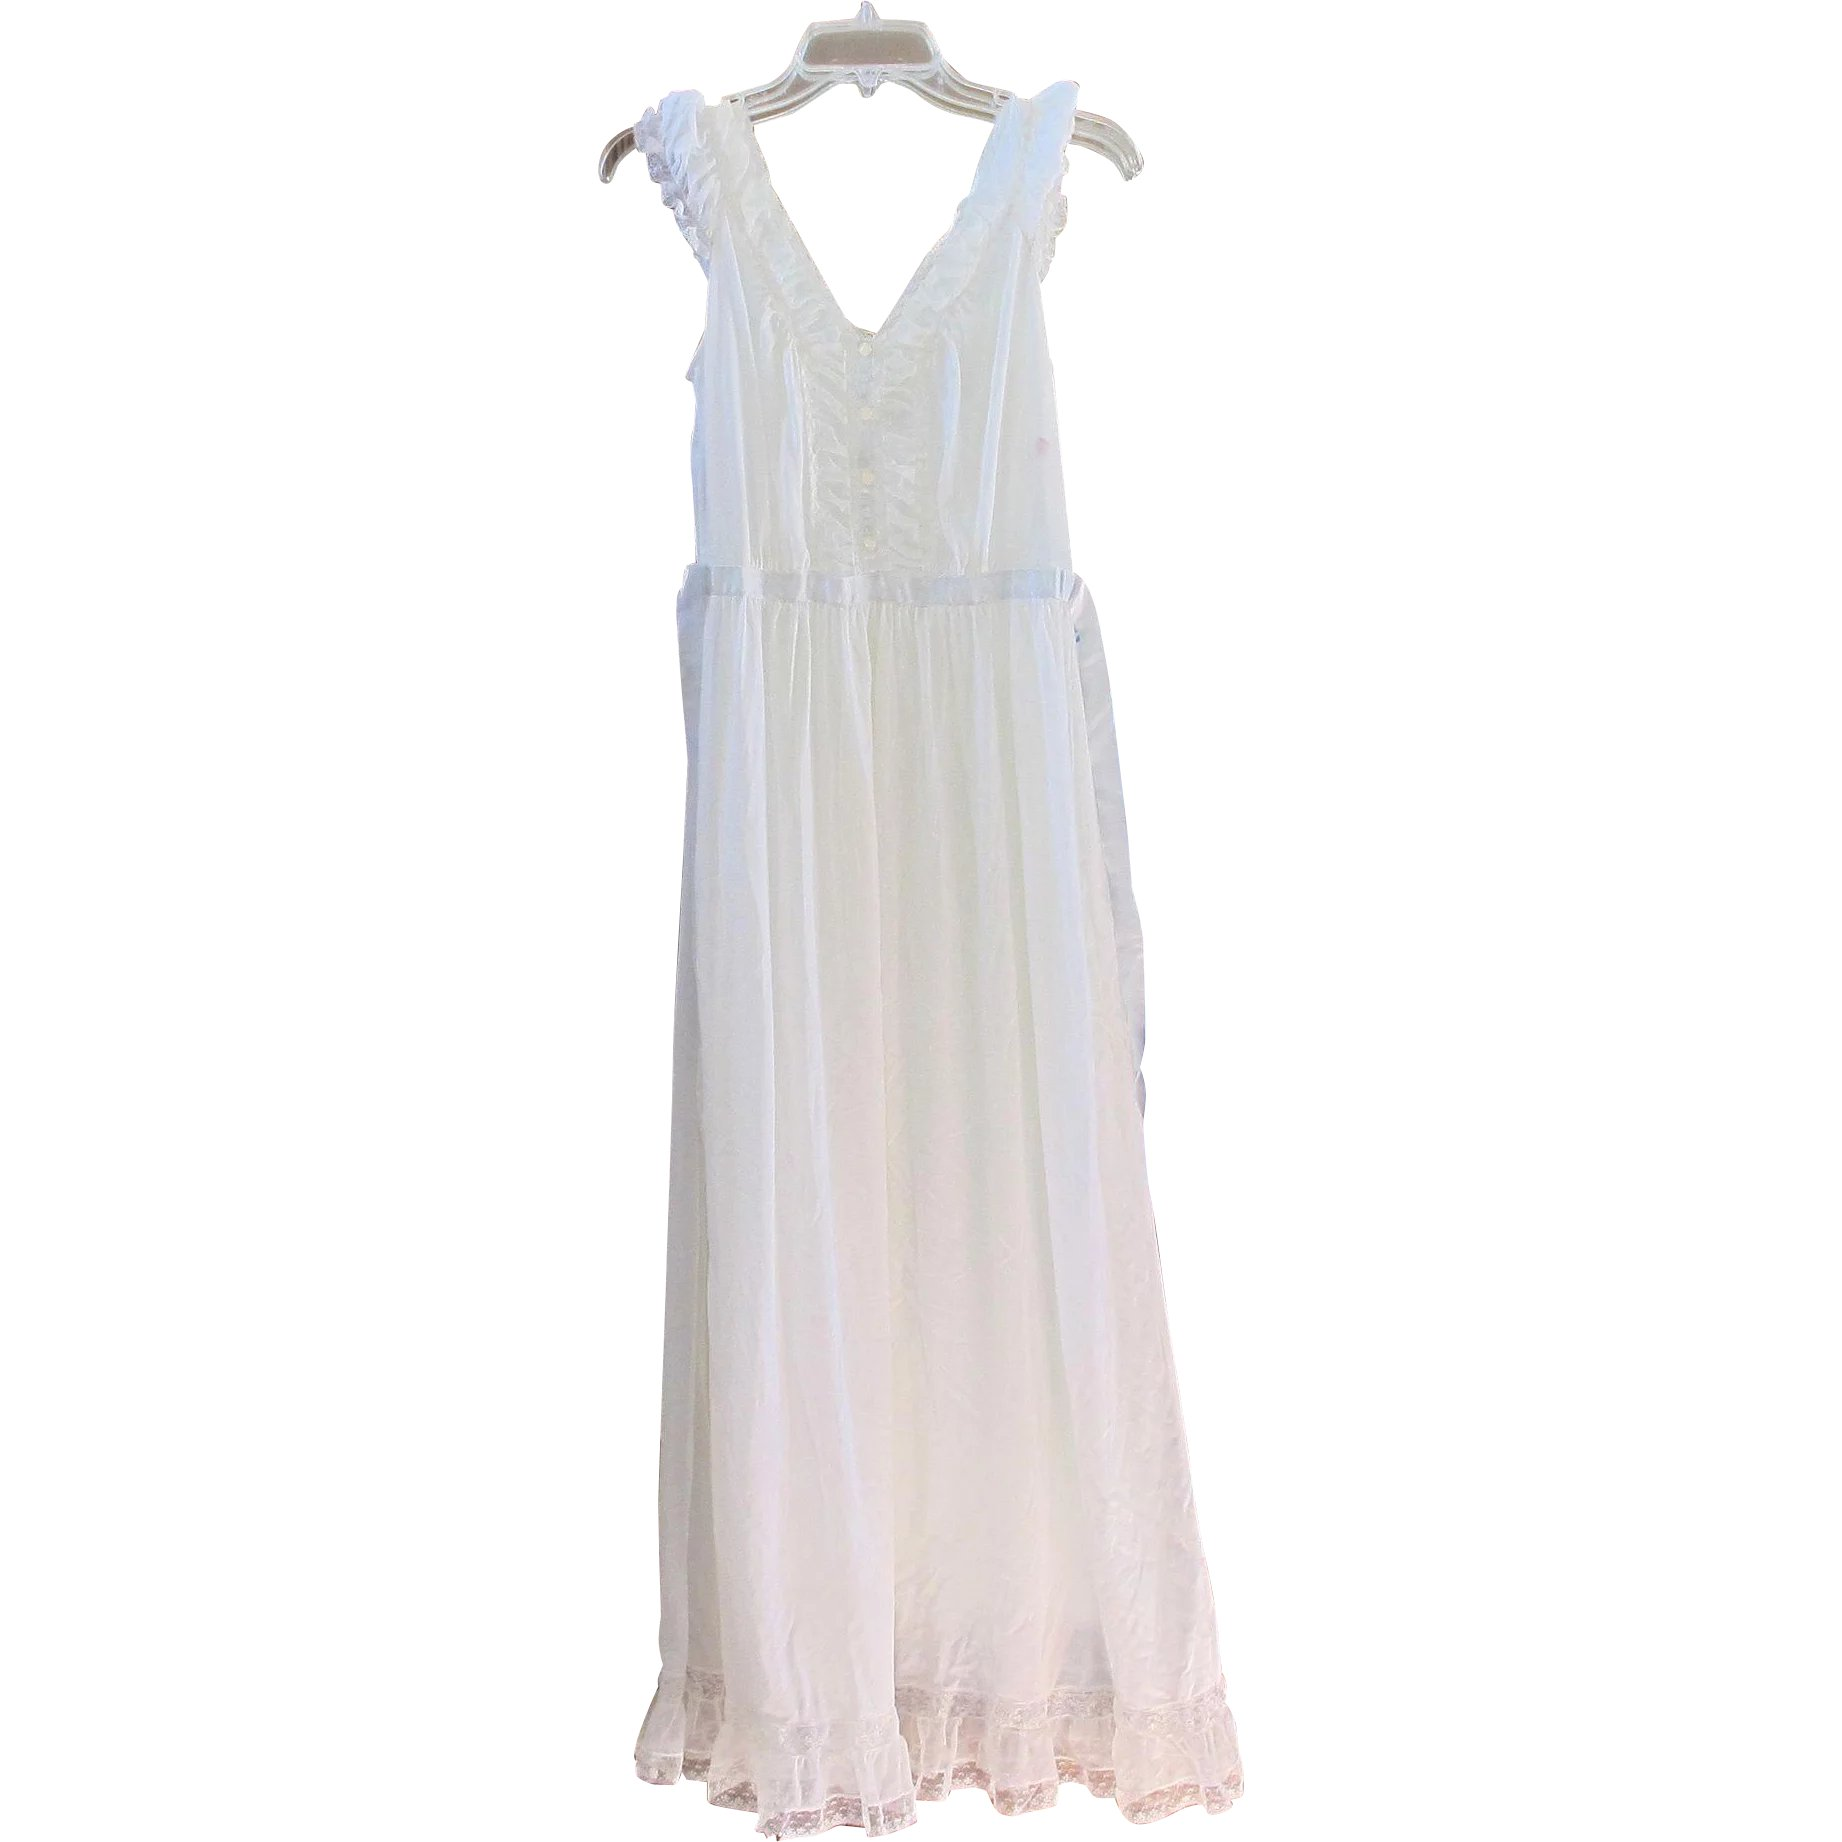 Vintage Luxite By Holeproof White Nightgown : 2Hearts Jewelry ...